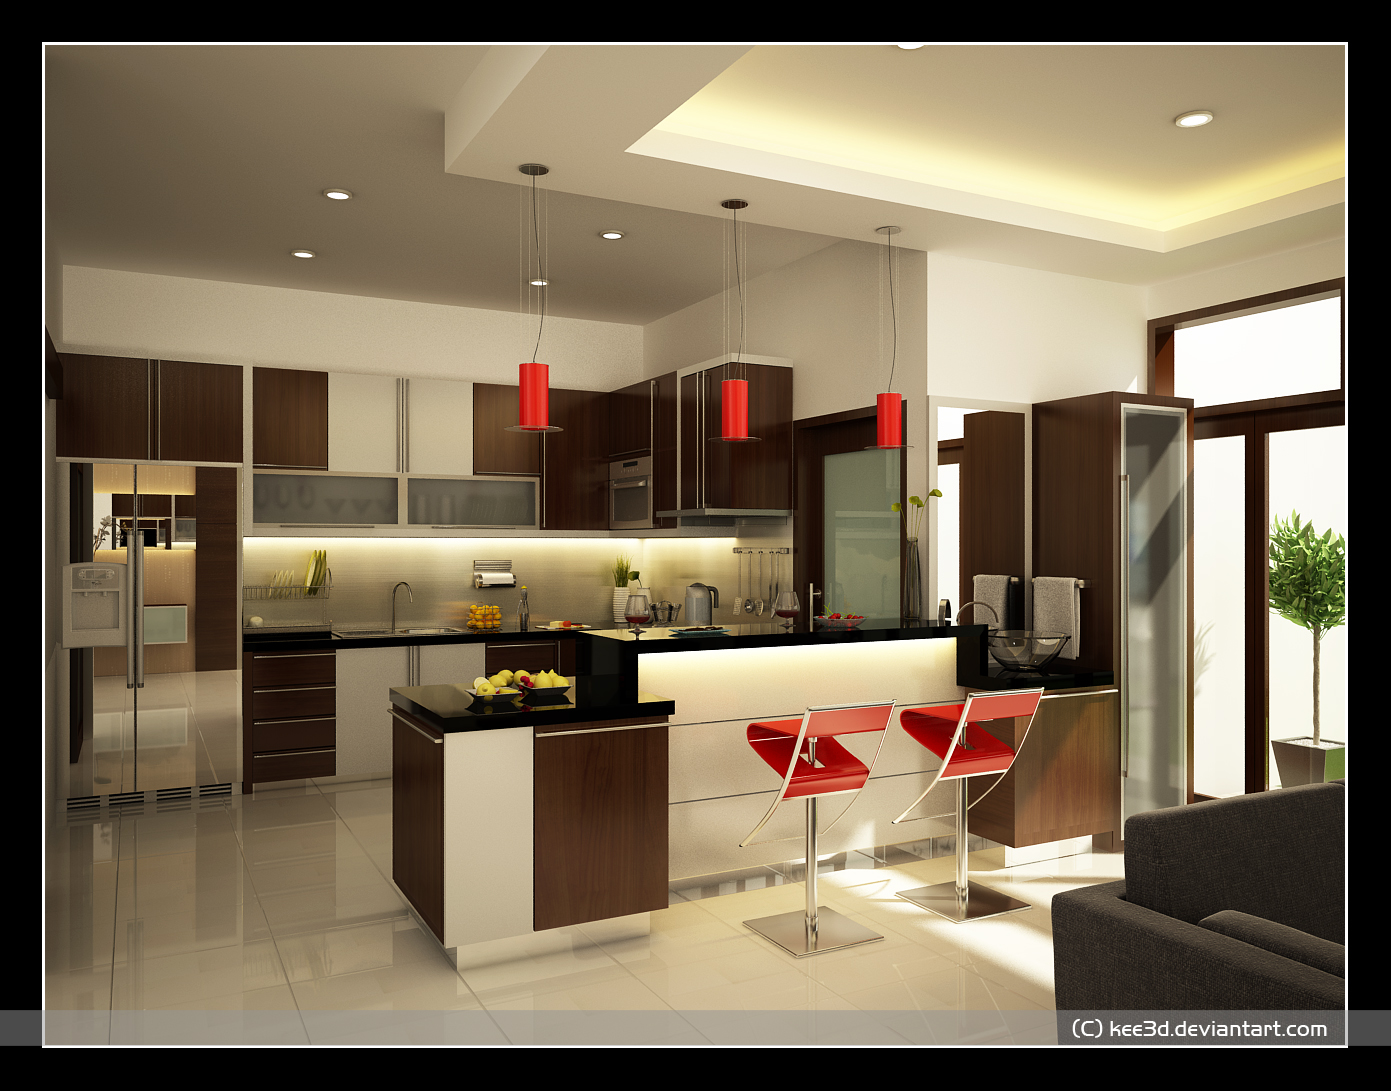 Kitchen design ideas Home design kitchen accessories